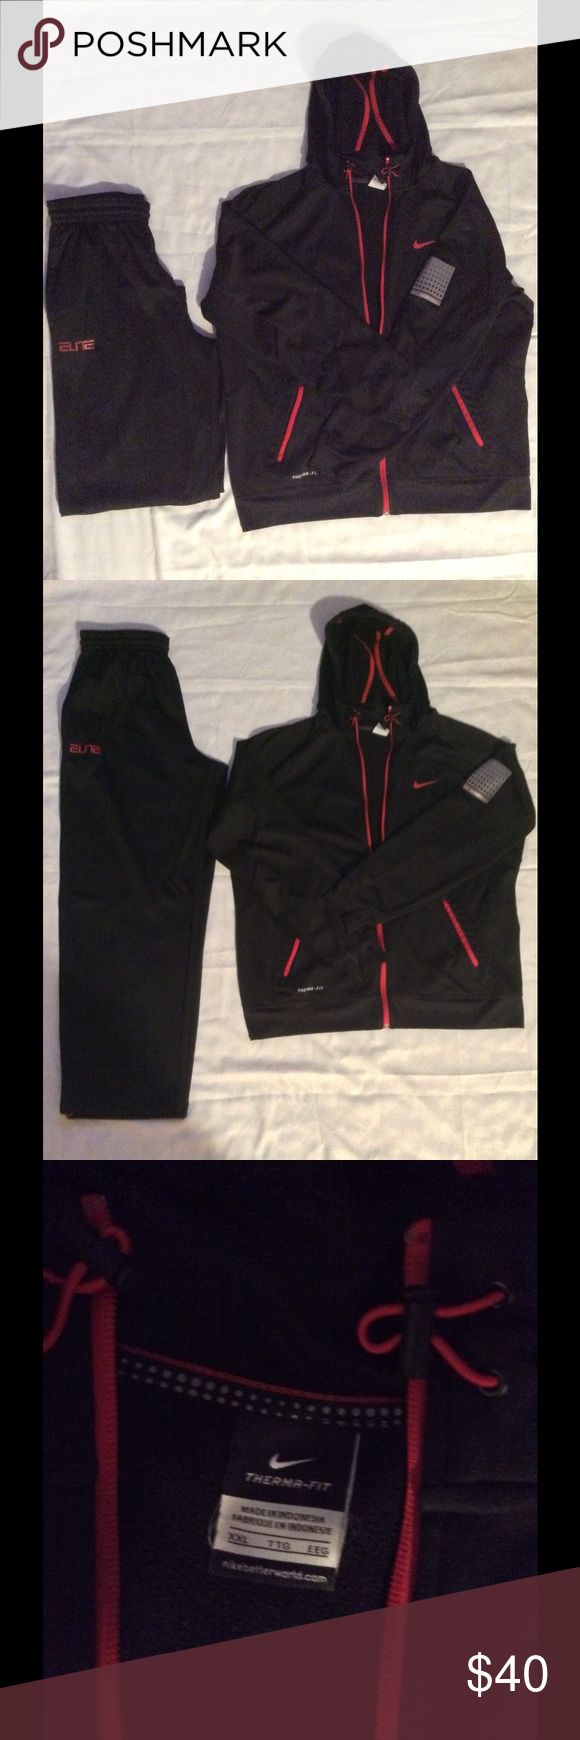 Nike Sweat Suit Nike Black and Red Sweat Suit with hood in excellent used condition. Size XXL Nike Other